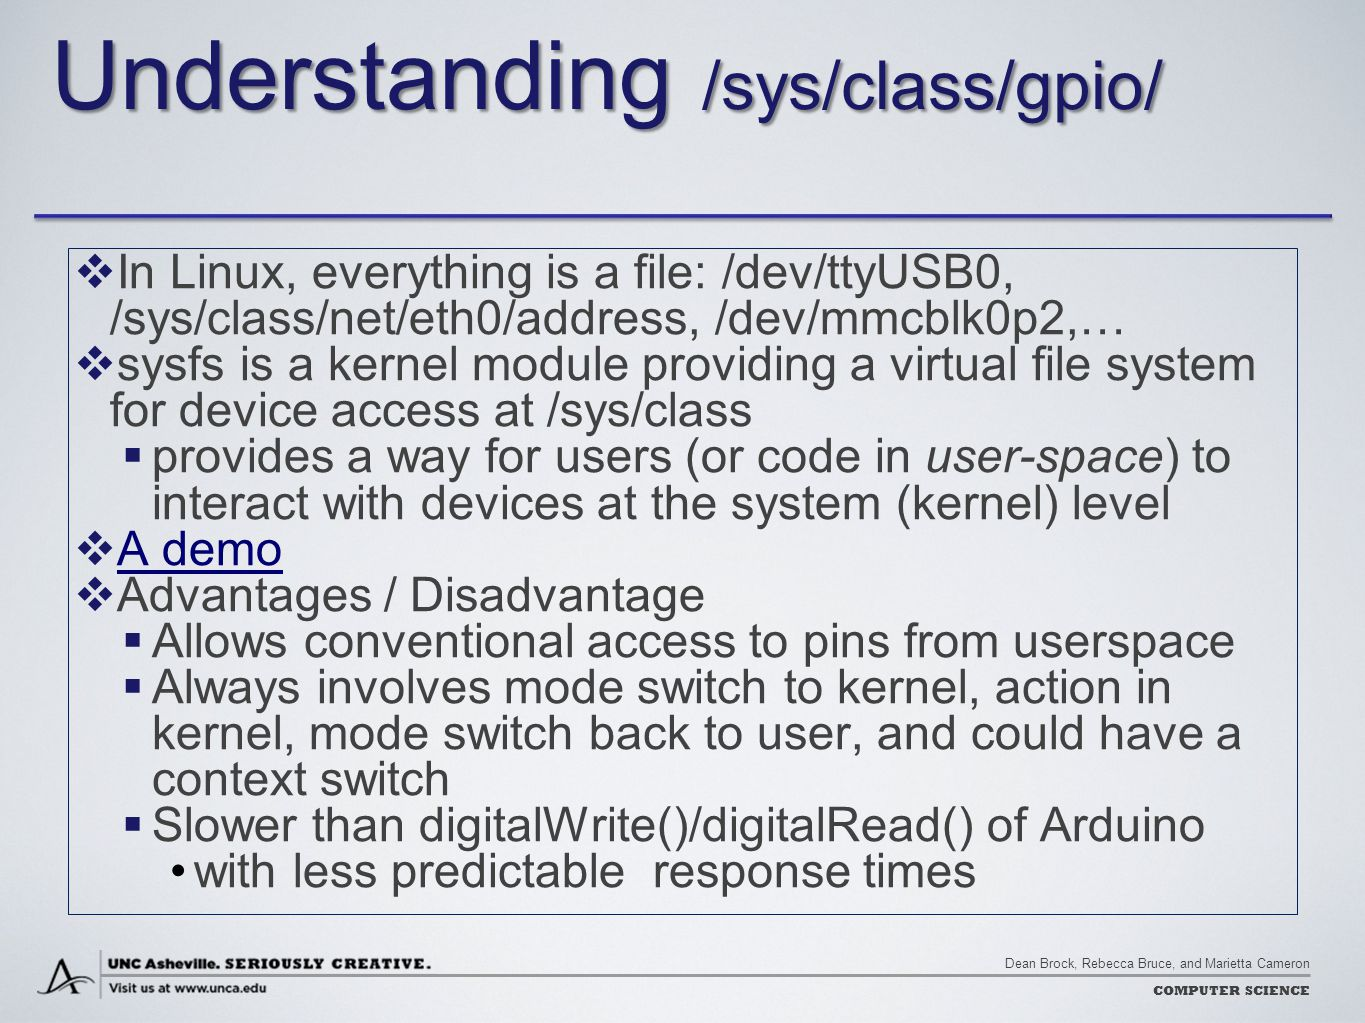 Dean Brock, Rebecca Bruce, and Marietta Cameron COMPUTER SCIENCE Understanding /sys/class/gpio/  In Linux, everything is a file: /dev/ttyUSB0, /sys/class/net/eth0/address, /dev/mmcblk0p2,…  sysfs is a kernel module providing a virtual file system for device access at /sys/class  provides a way for users (or code in user-space) to interact with devices at the system (kernel) level  A demo A demo  Advantages / Disadvantage  Allows conventional access to pins from userspace  Always involves mode switch to kernel, action in kernel, mode switch back to user, and could have a context switch  Slower than digitalWrite()/digitalRead() of Arduino with less predictable response times